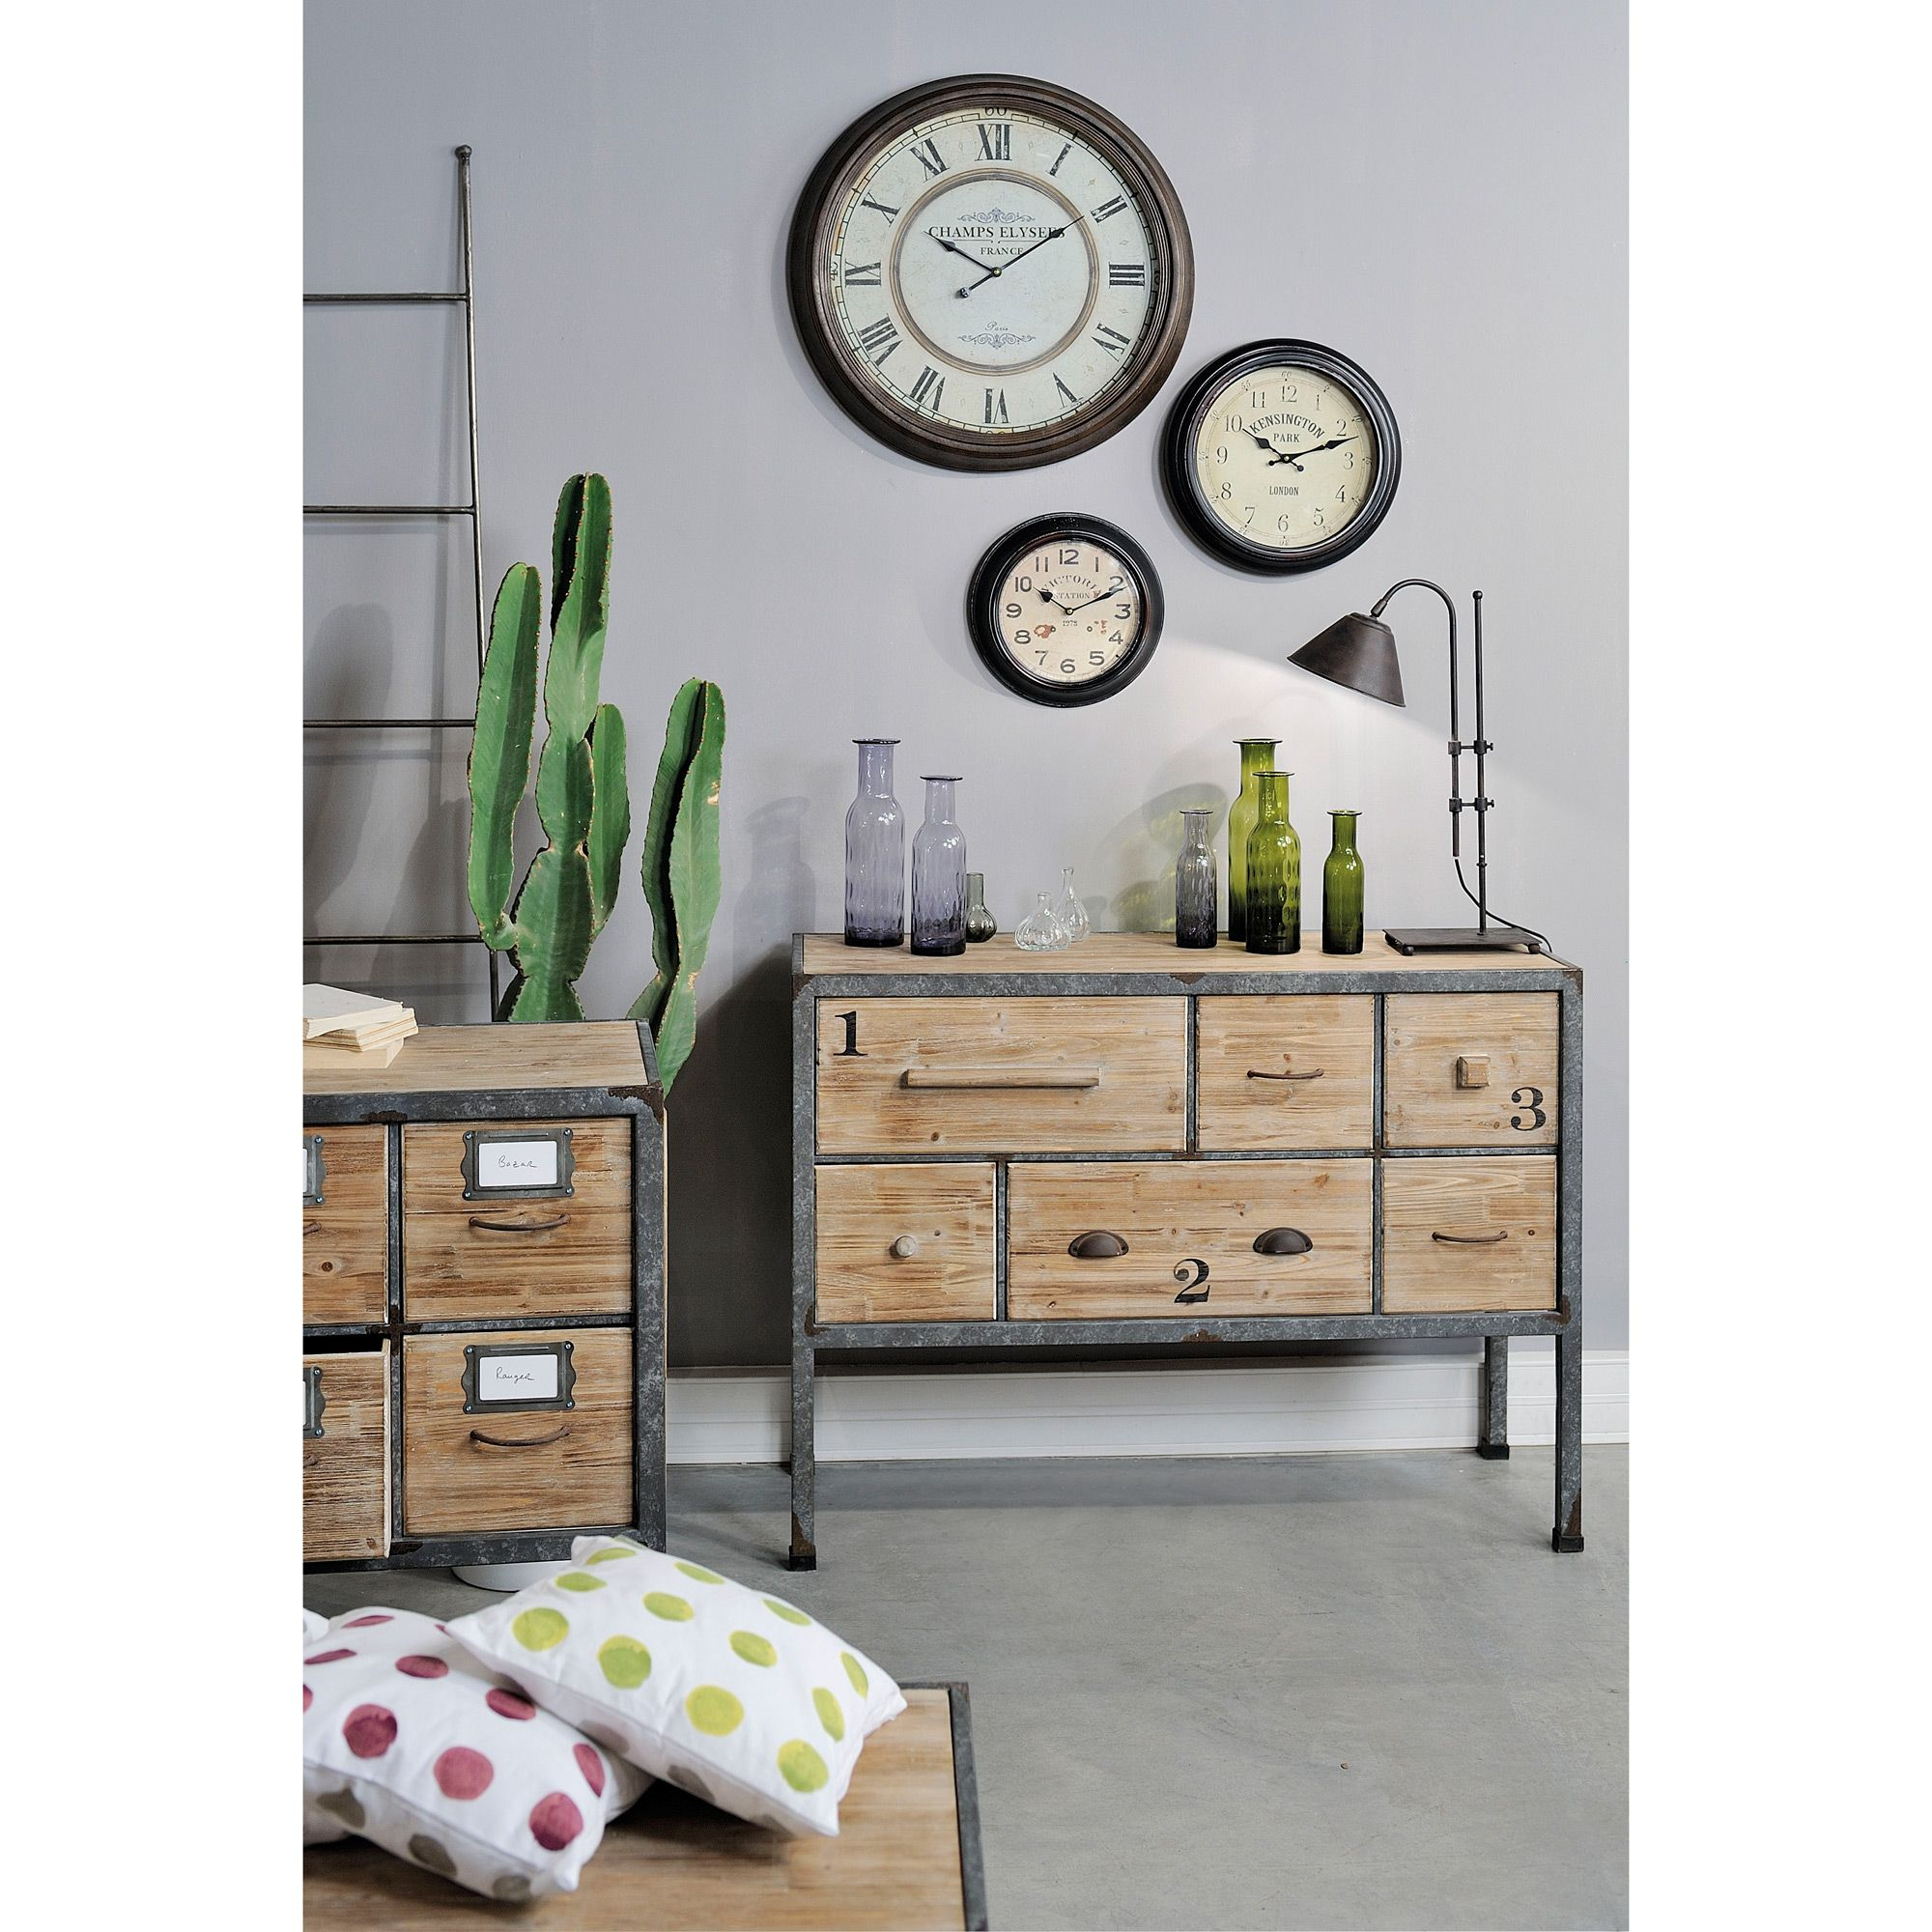 Horloge Industrielle En Metal Marron Champs Elysees D 60cm Stylus Jardin D Ulysse Port Offert Mobilier De Salon Decoration Maison Deco